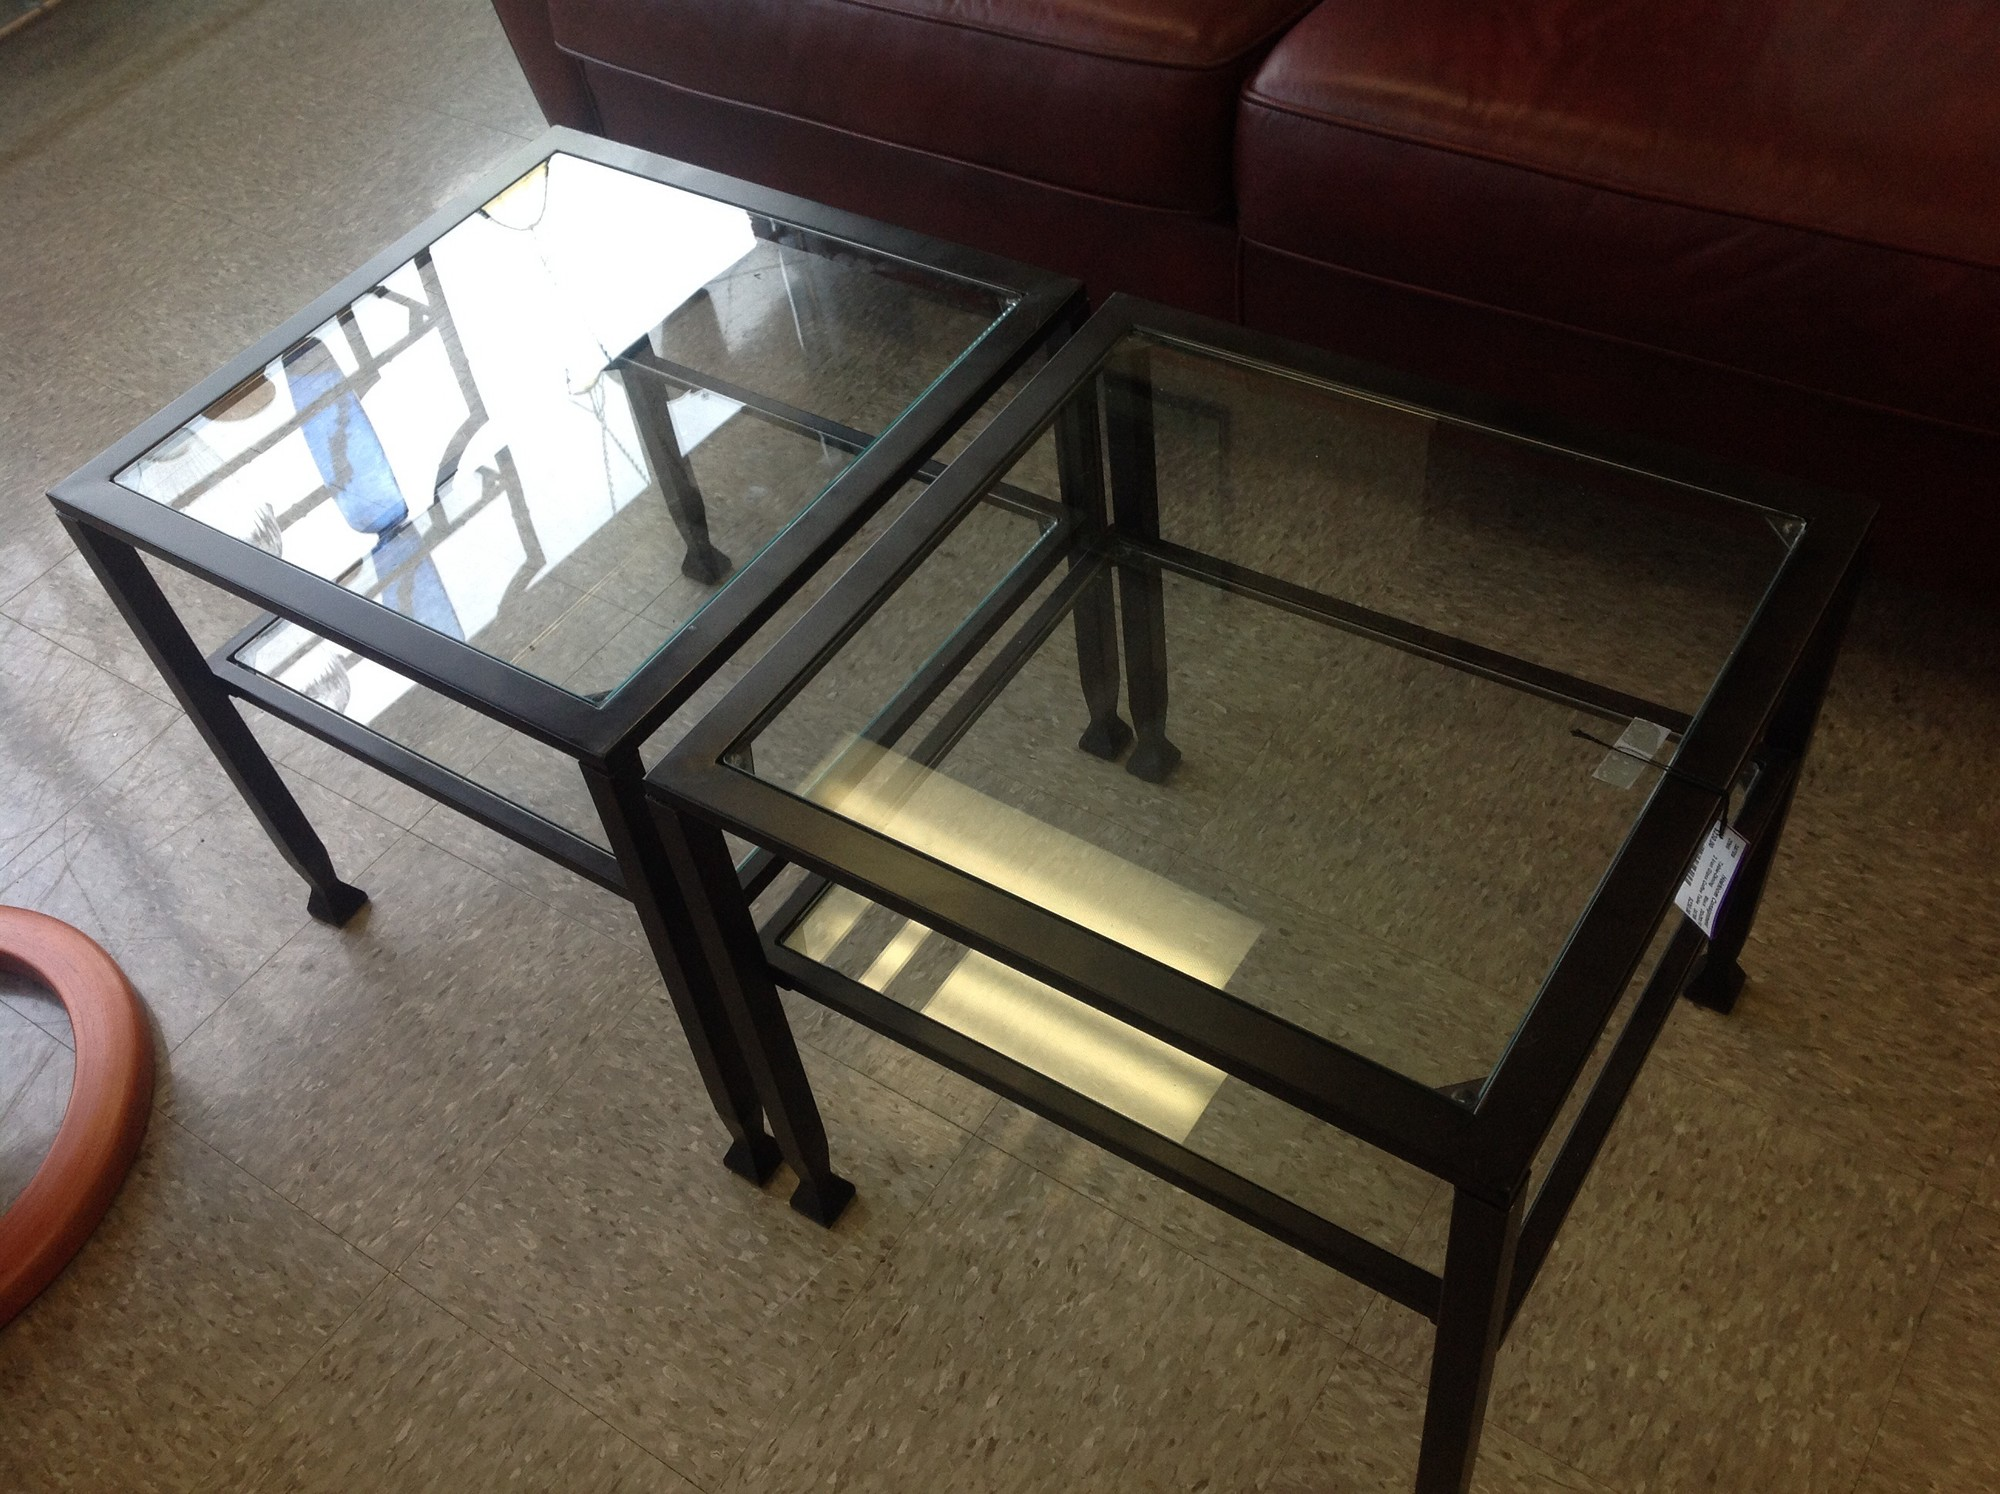 2 Iron Glass Coffee Table, Black, Size: 20x20x18